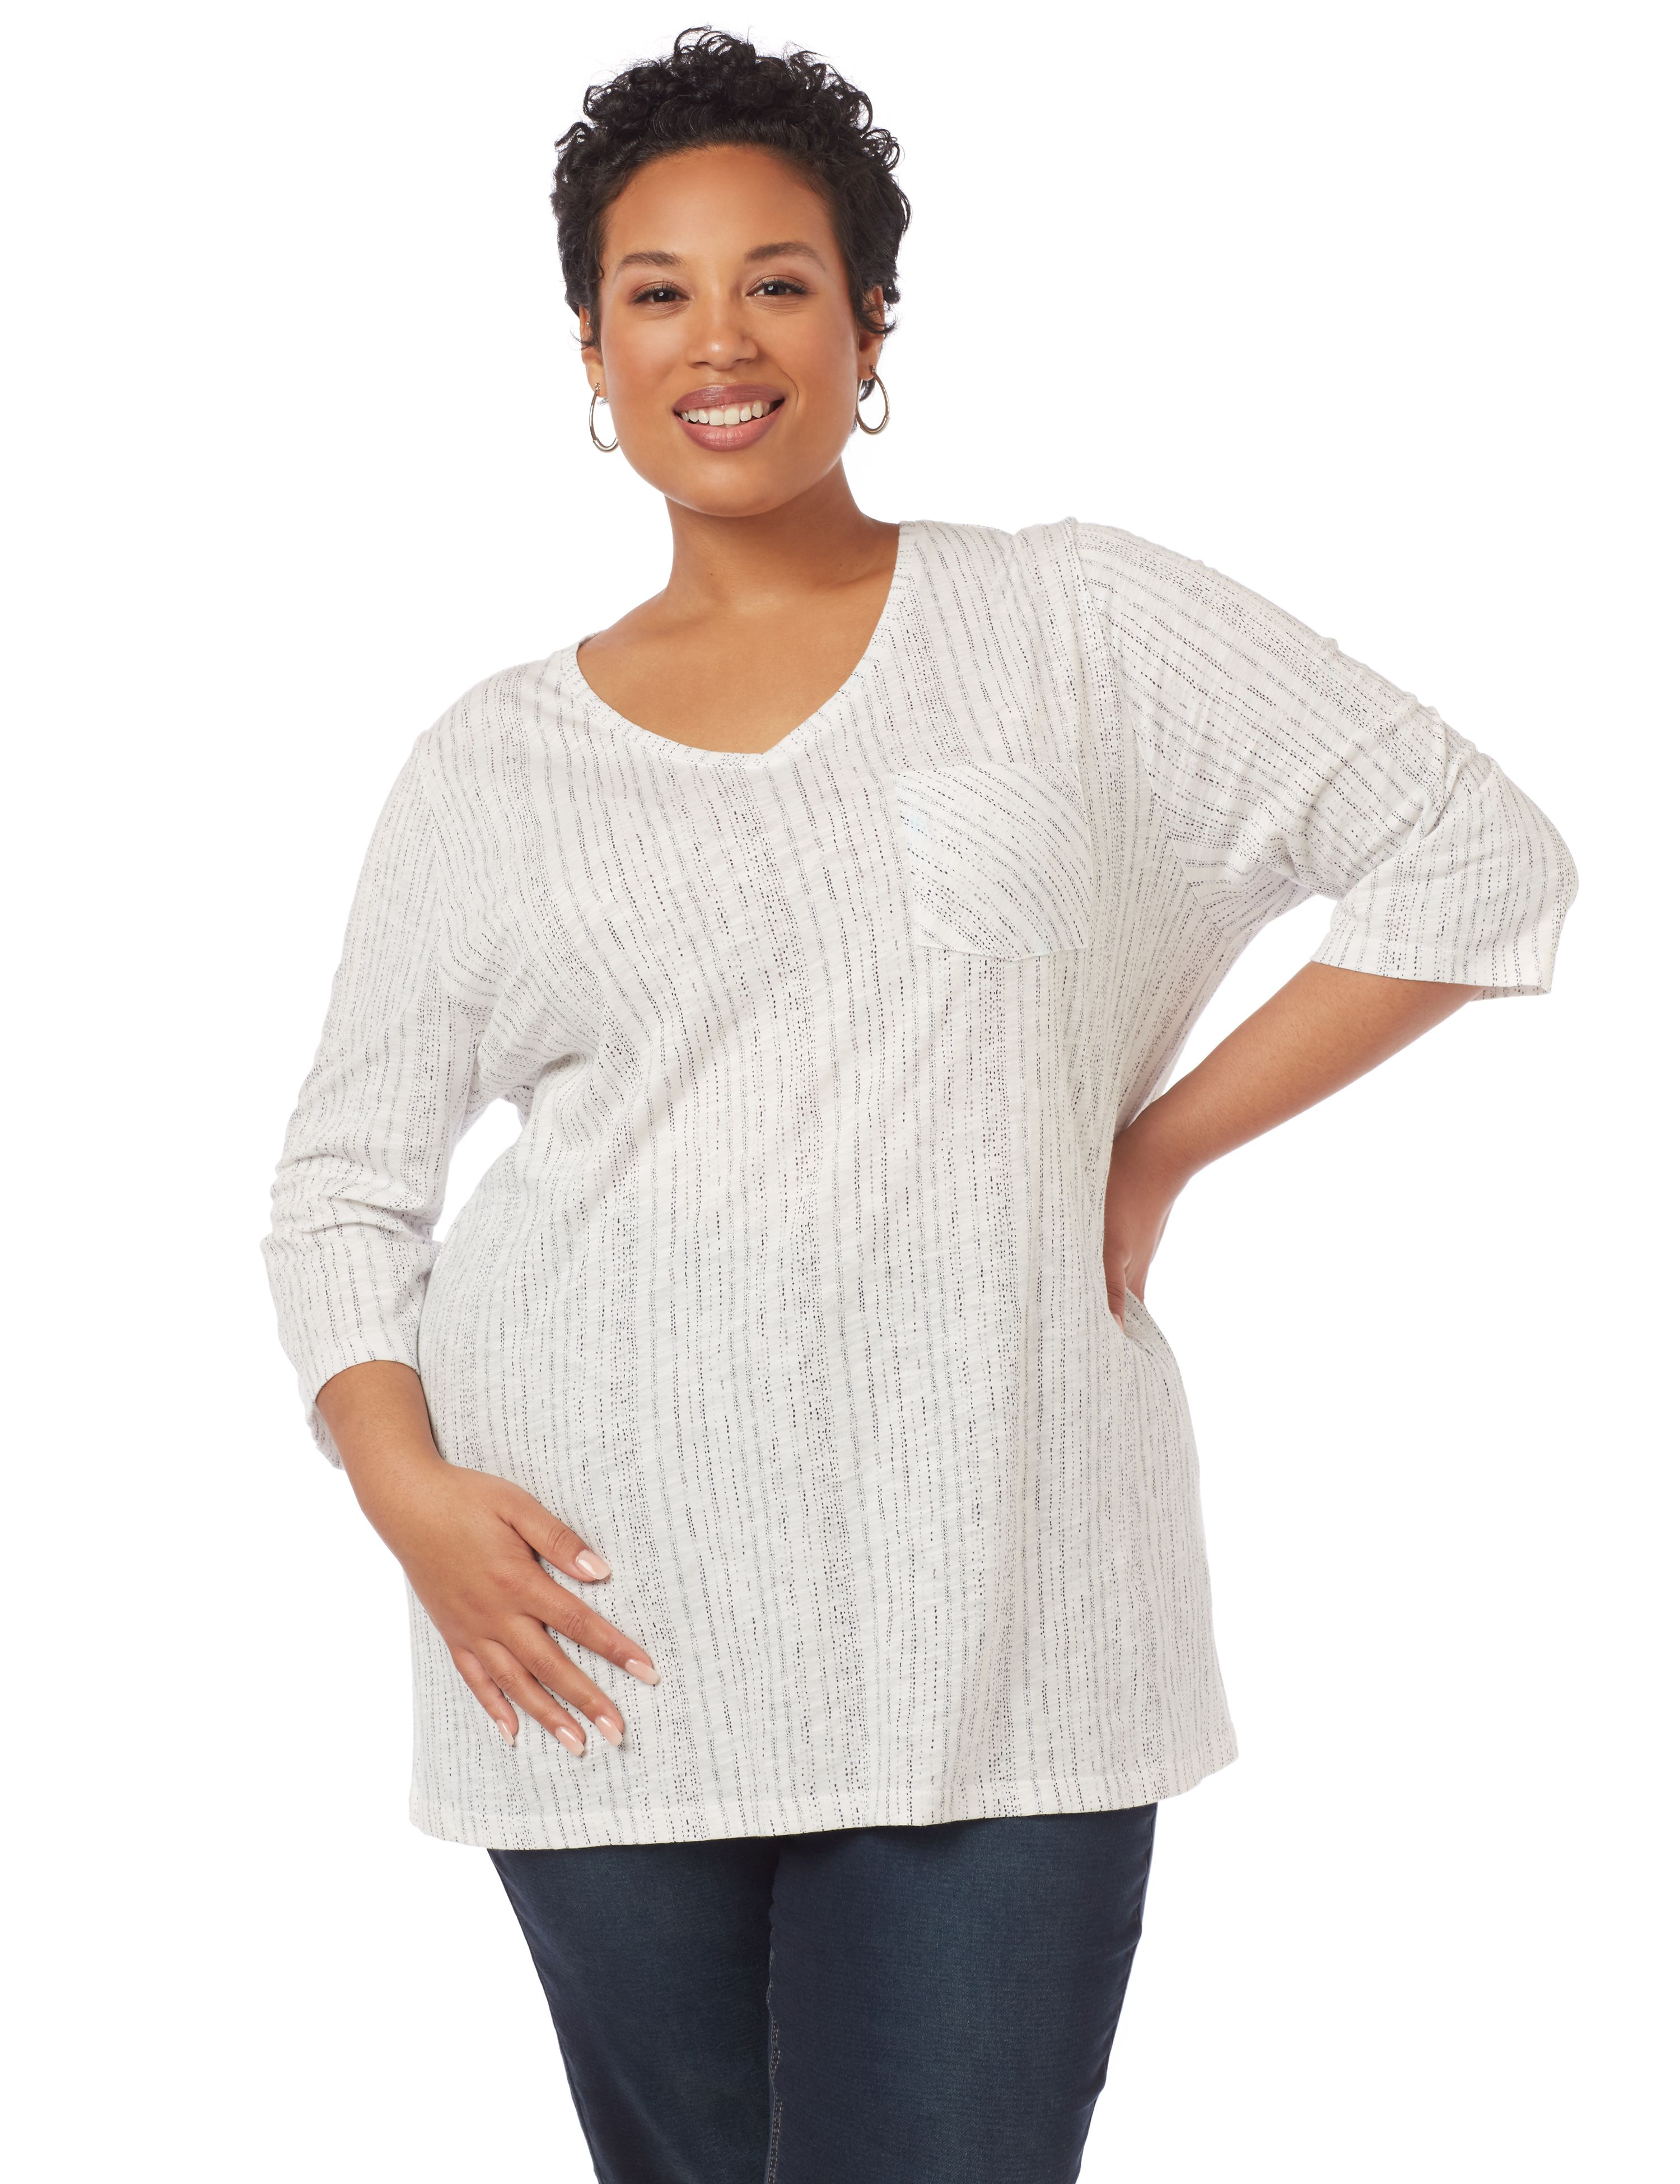 Evia Textured 3/4-Sleeve Top with Pocket 1091098 STIPLE STRIPE VNK MP-300094728